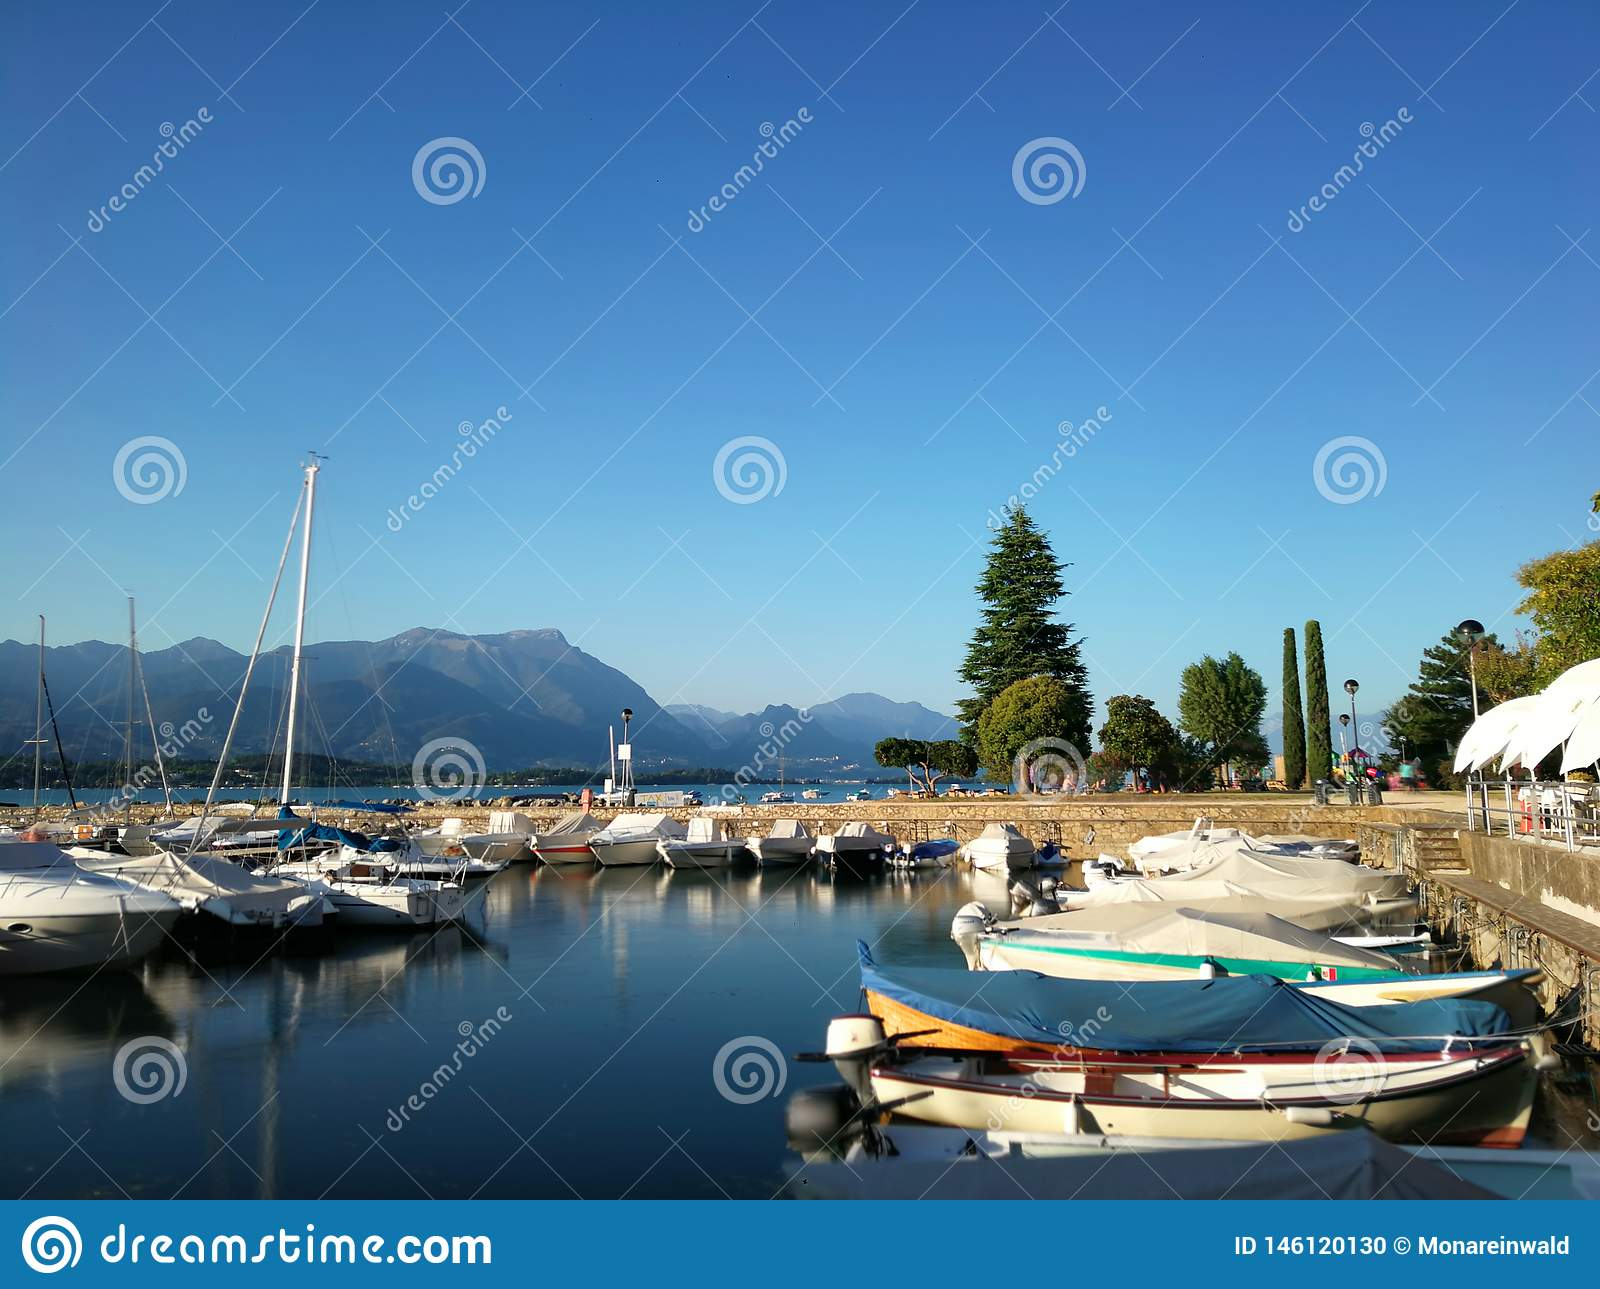 Harbour on Garda lake in italy on summer.